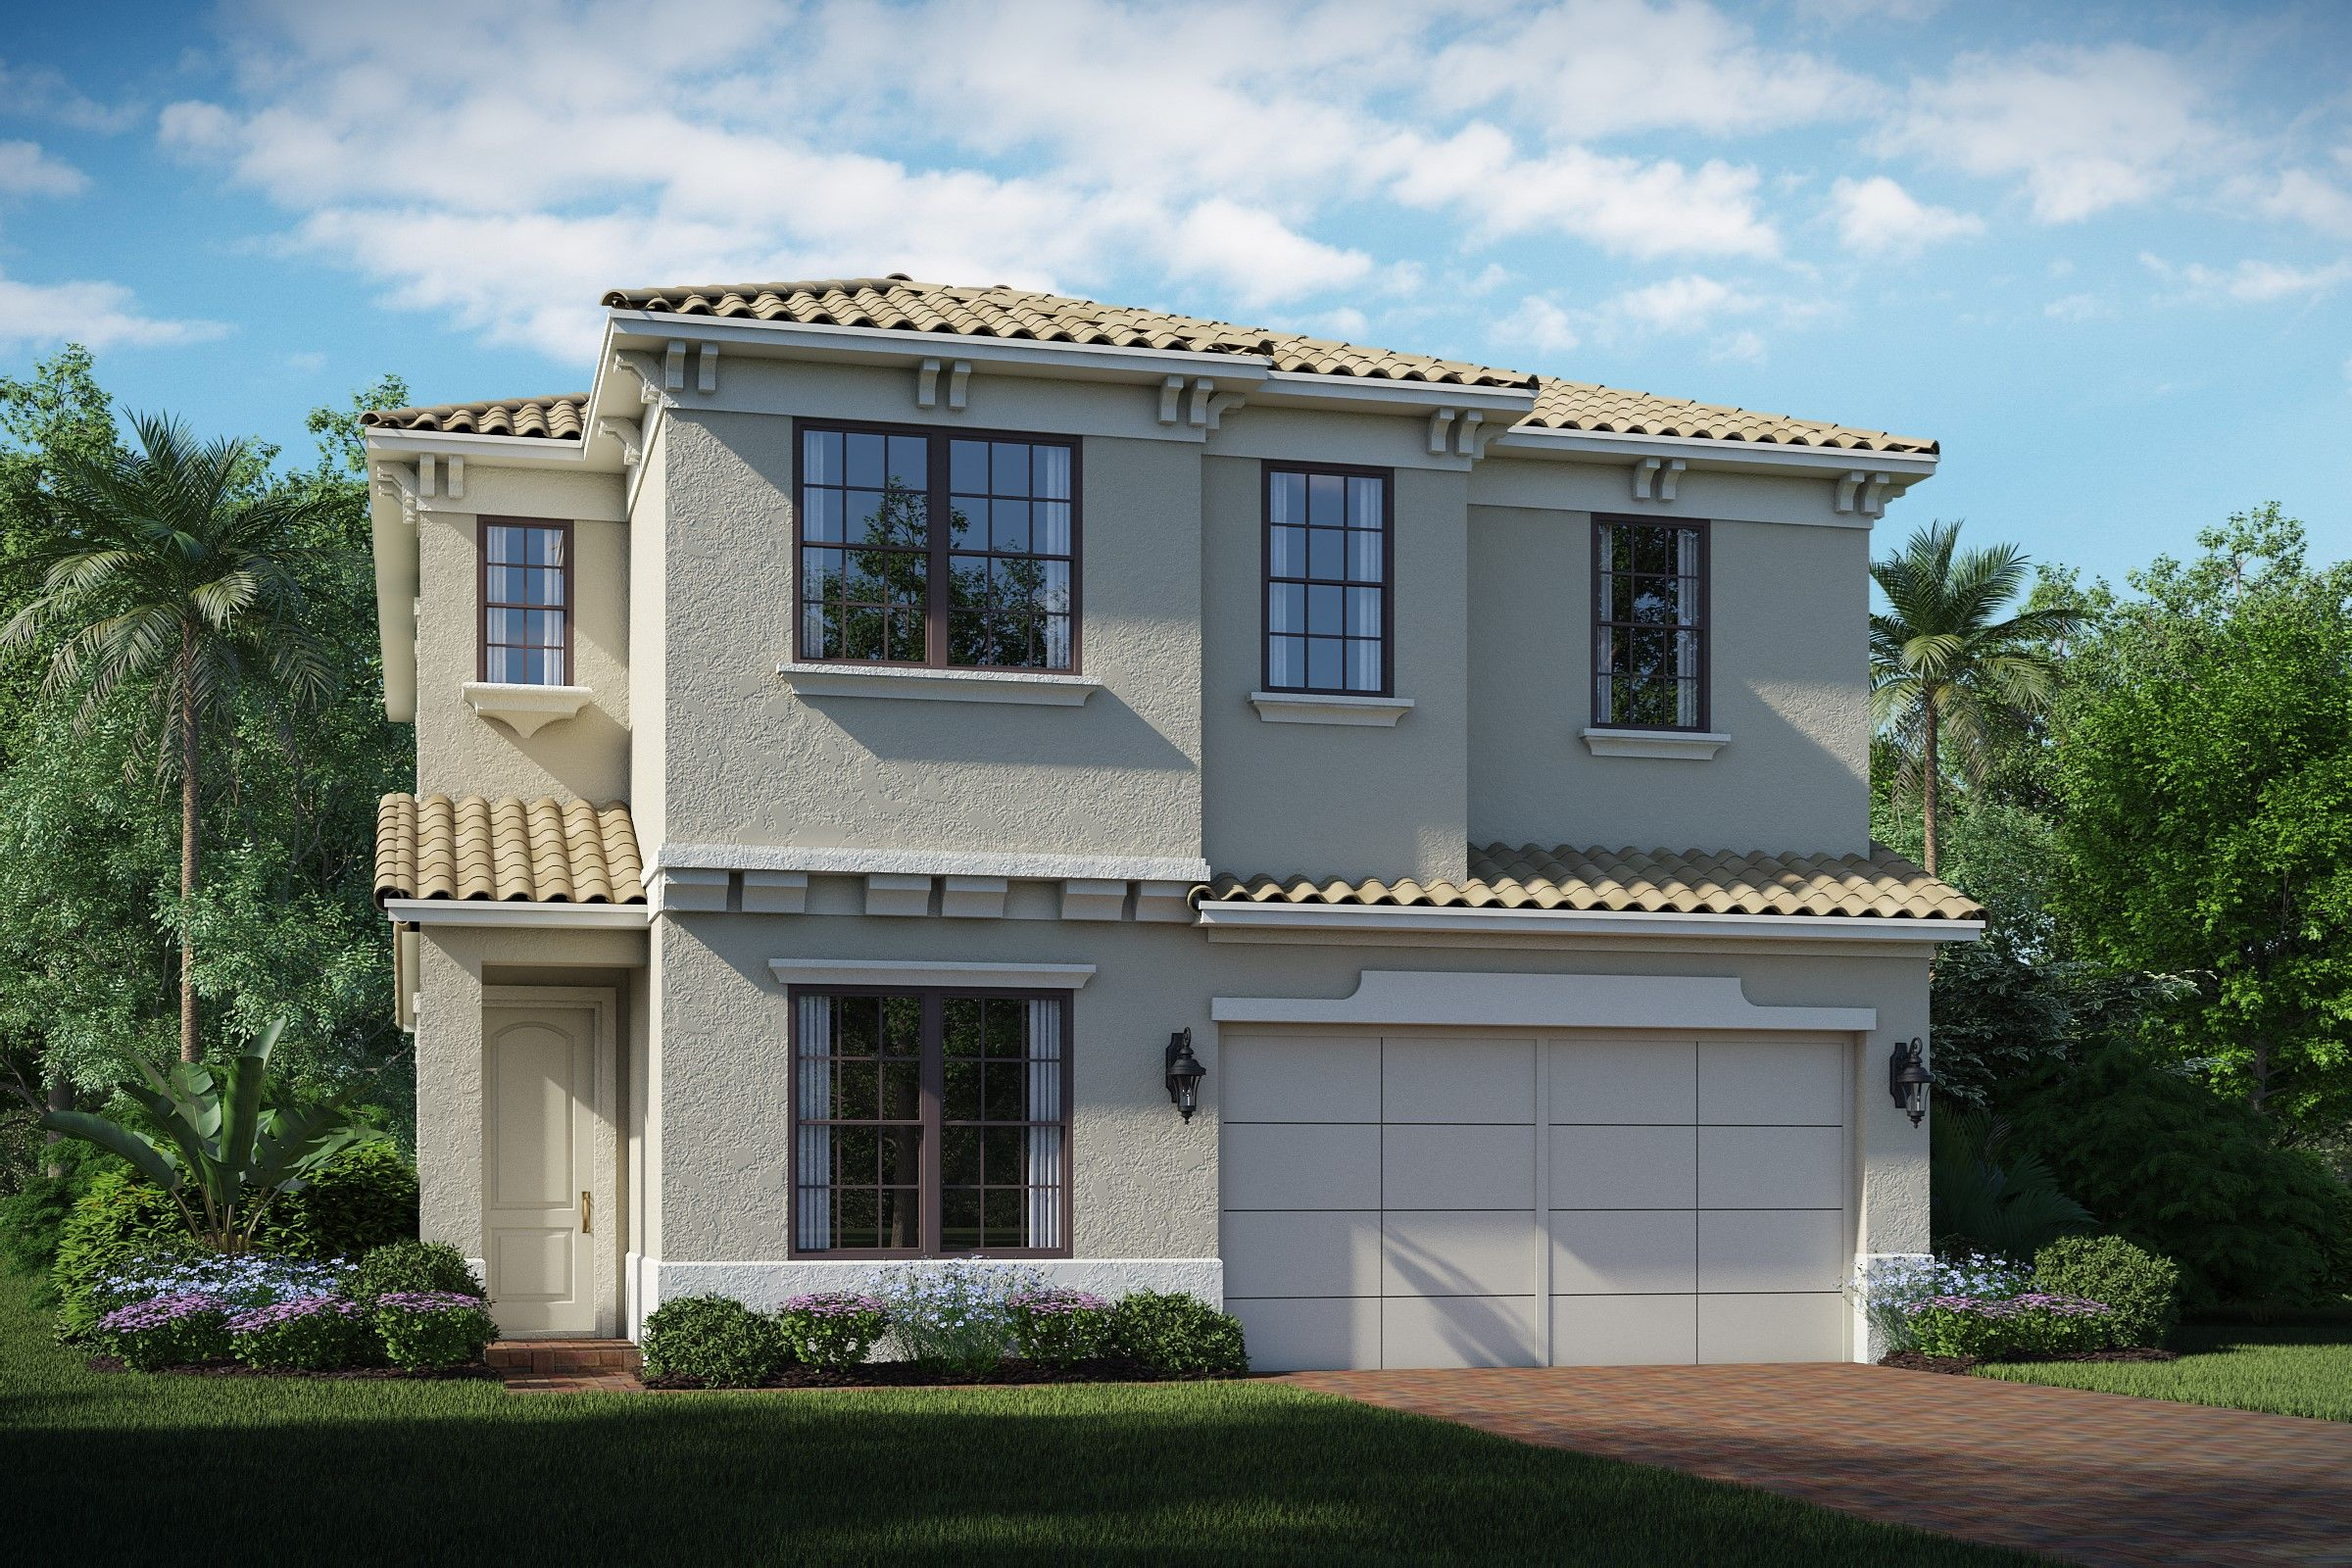 Ενοικιάζεται για την Πώληση στο Vitale 9133 Nw 39th Street, Homesite 177 Coral Springs, Florida 33071 United States